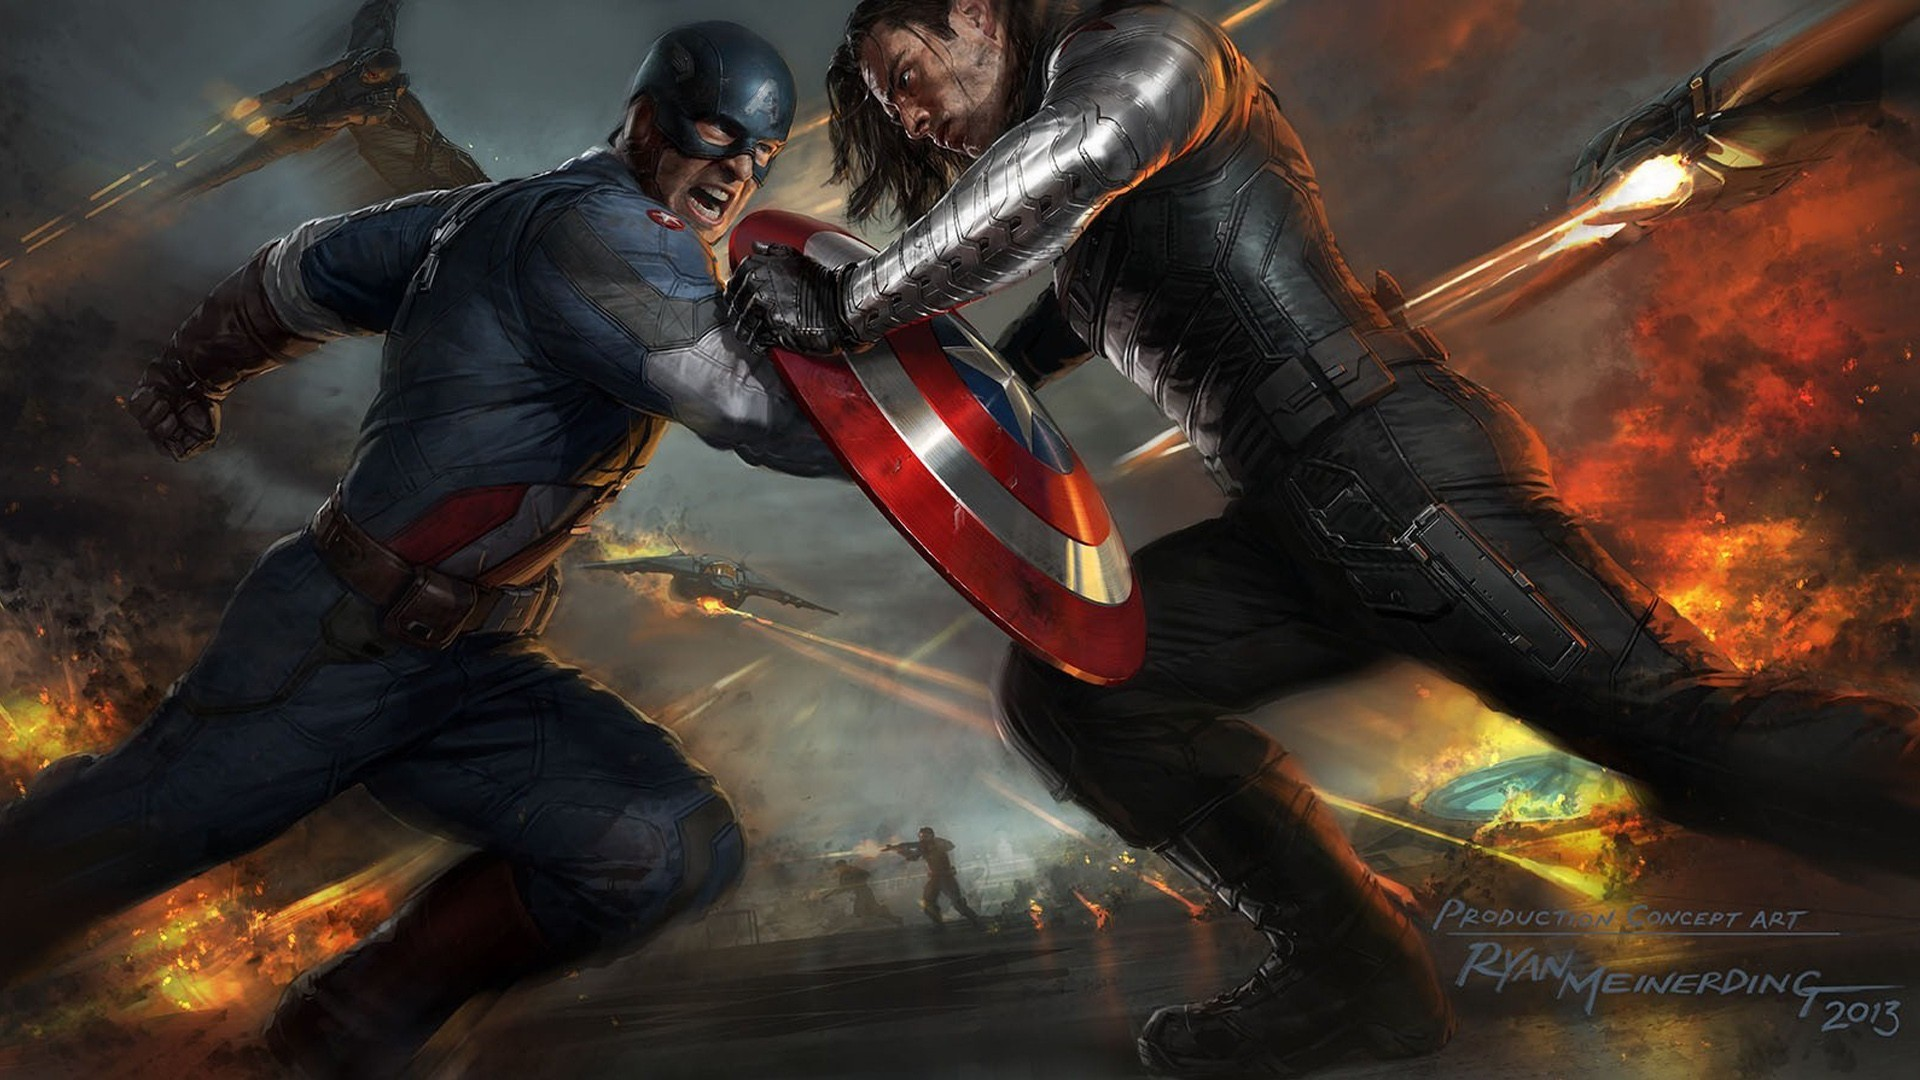 1920x1080 Bucky Barnes (winter soldier) images Captain America vs Winter Soldier HD  wallpaper and background photos